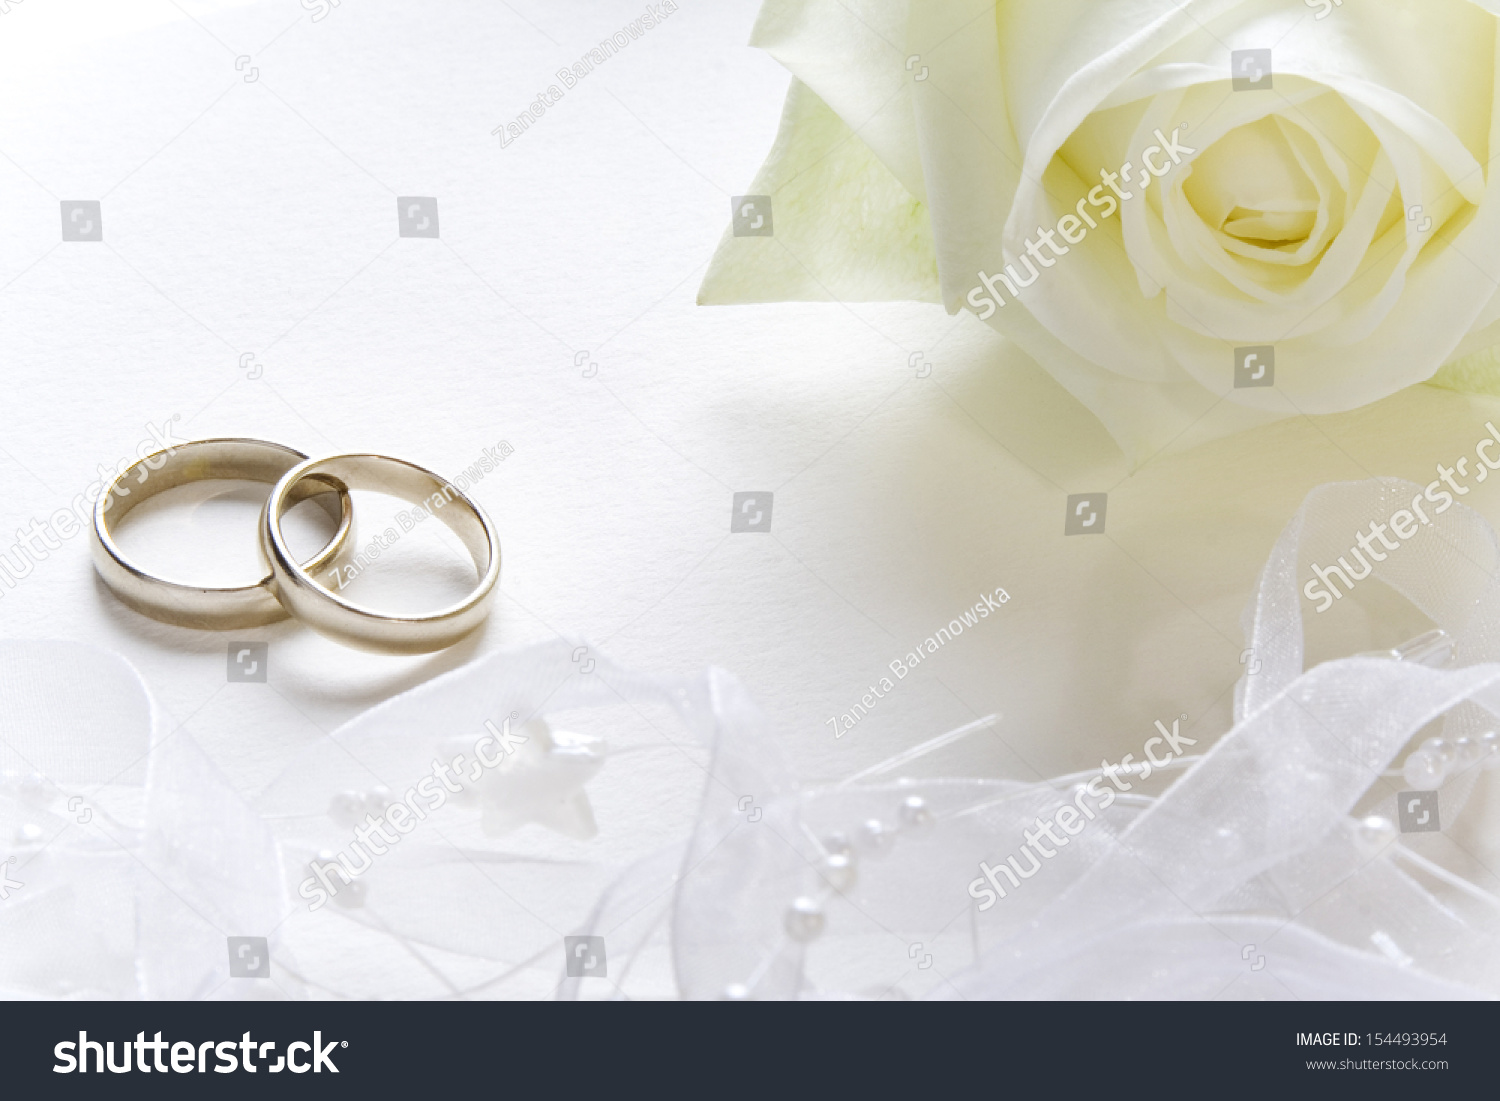 Wedding Background With Bands And White Rose: Cross Backround Wedding Bands At Websimilar.org